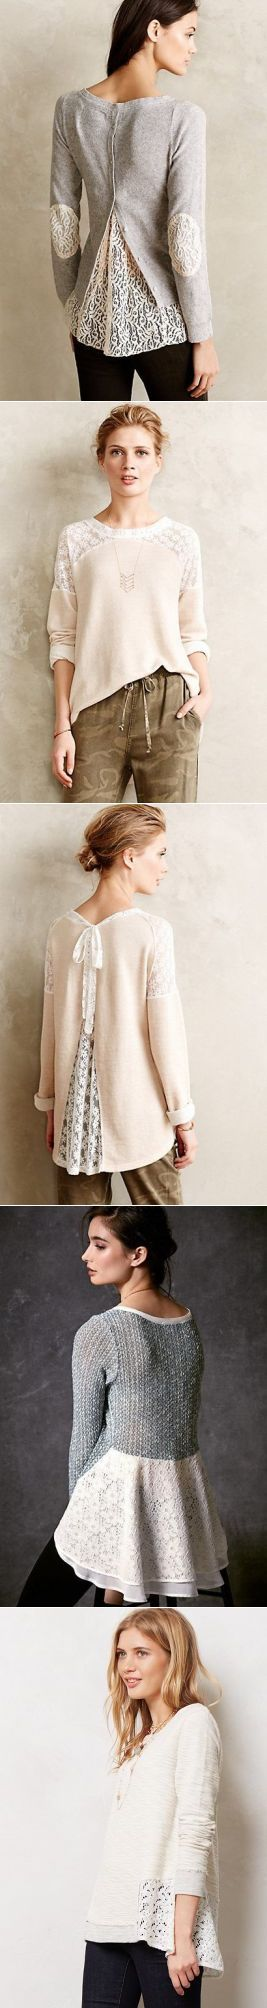 ❤ Love these lace upcycled sweaters! Great inspirations. Свитер + кружево